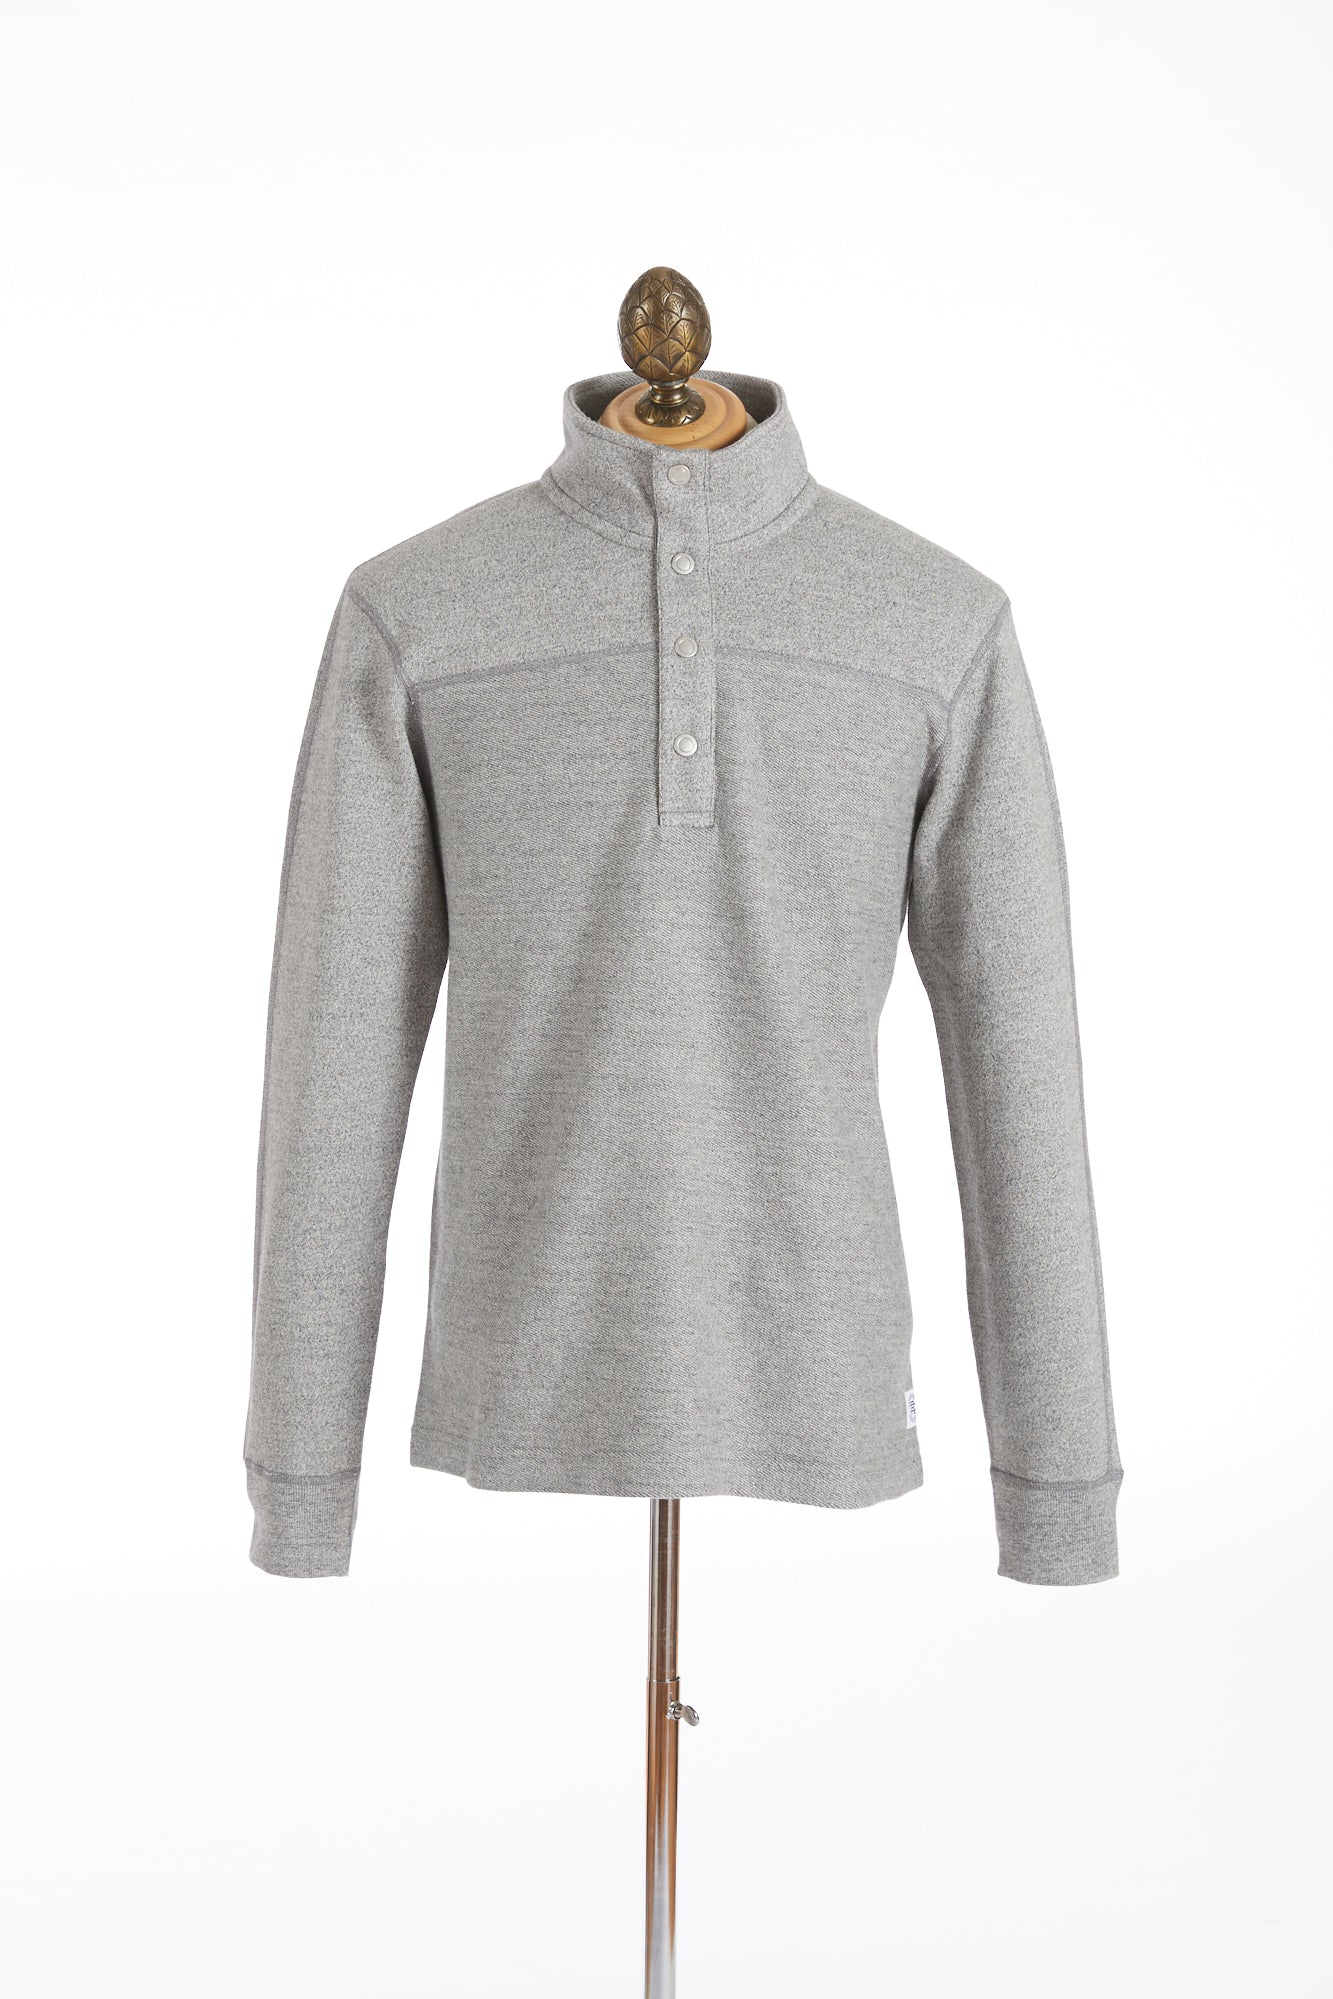 Reigning Champ Marled Grey Half Snap Pullover Sweater